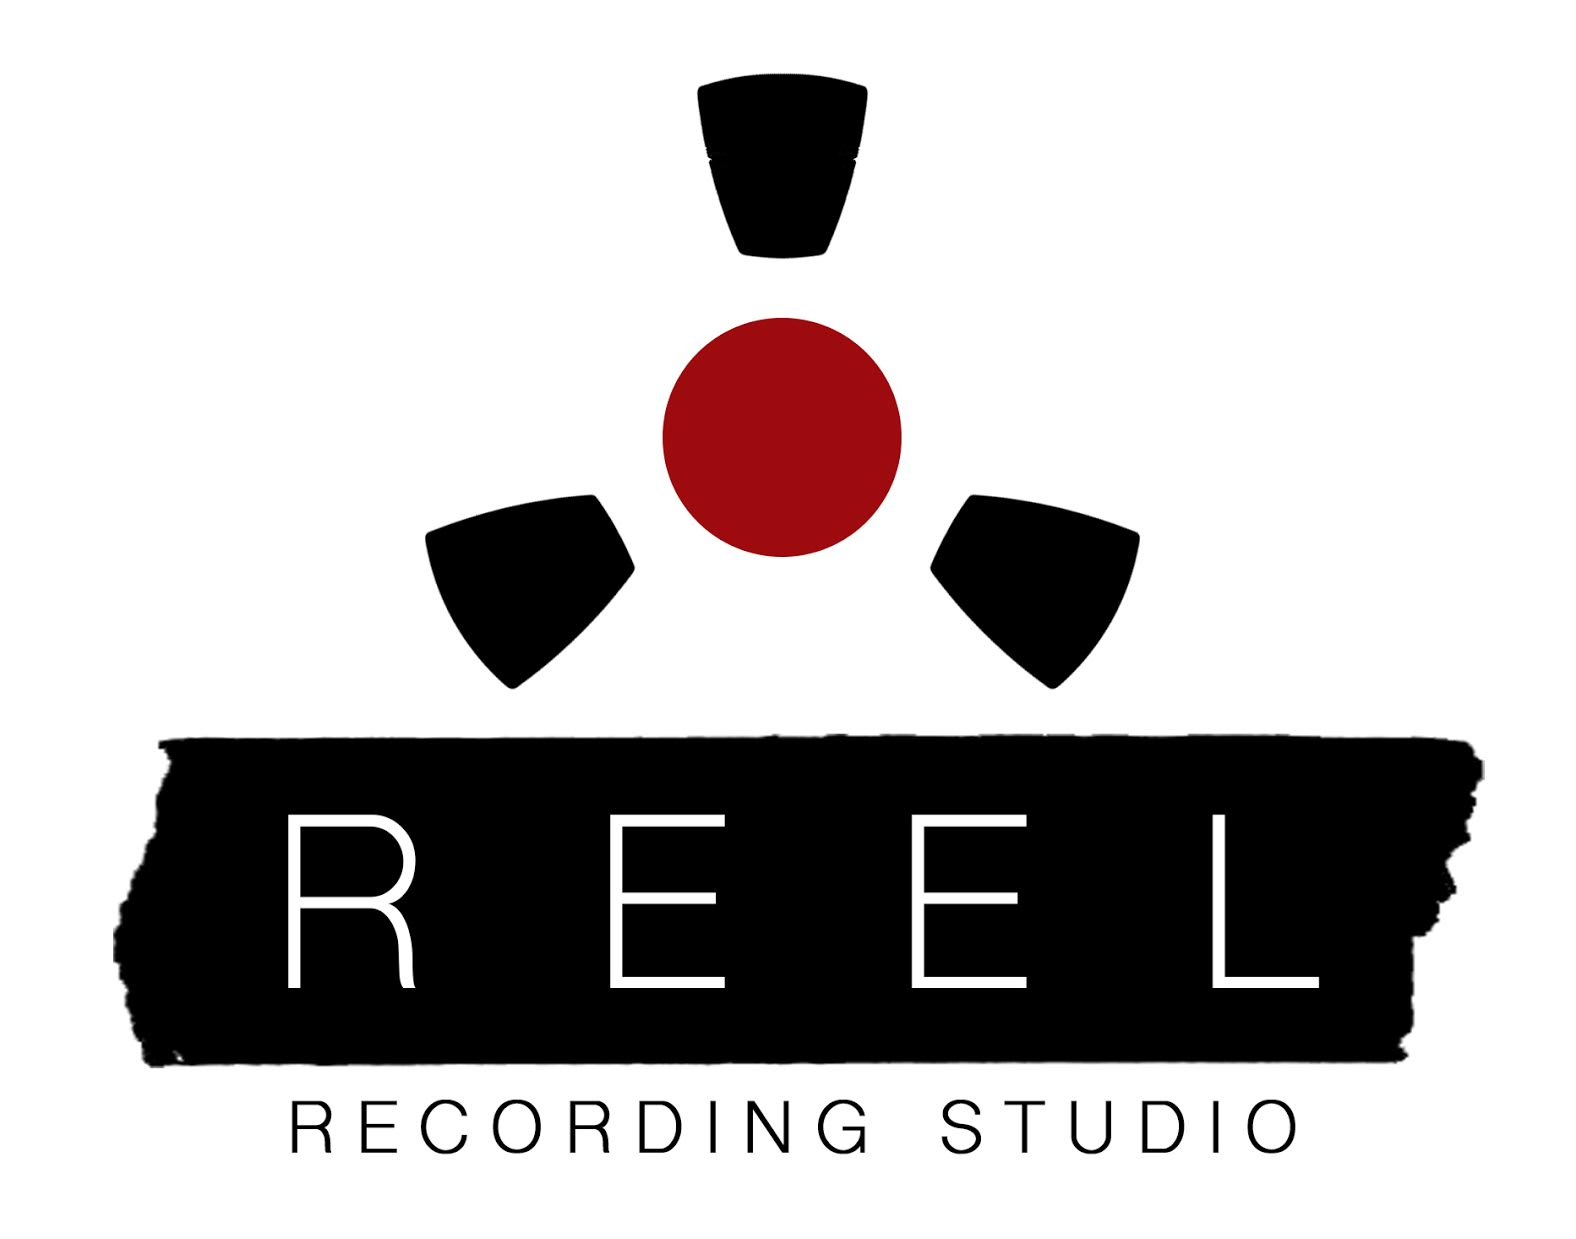 Reel Recording Studio